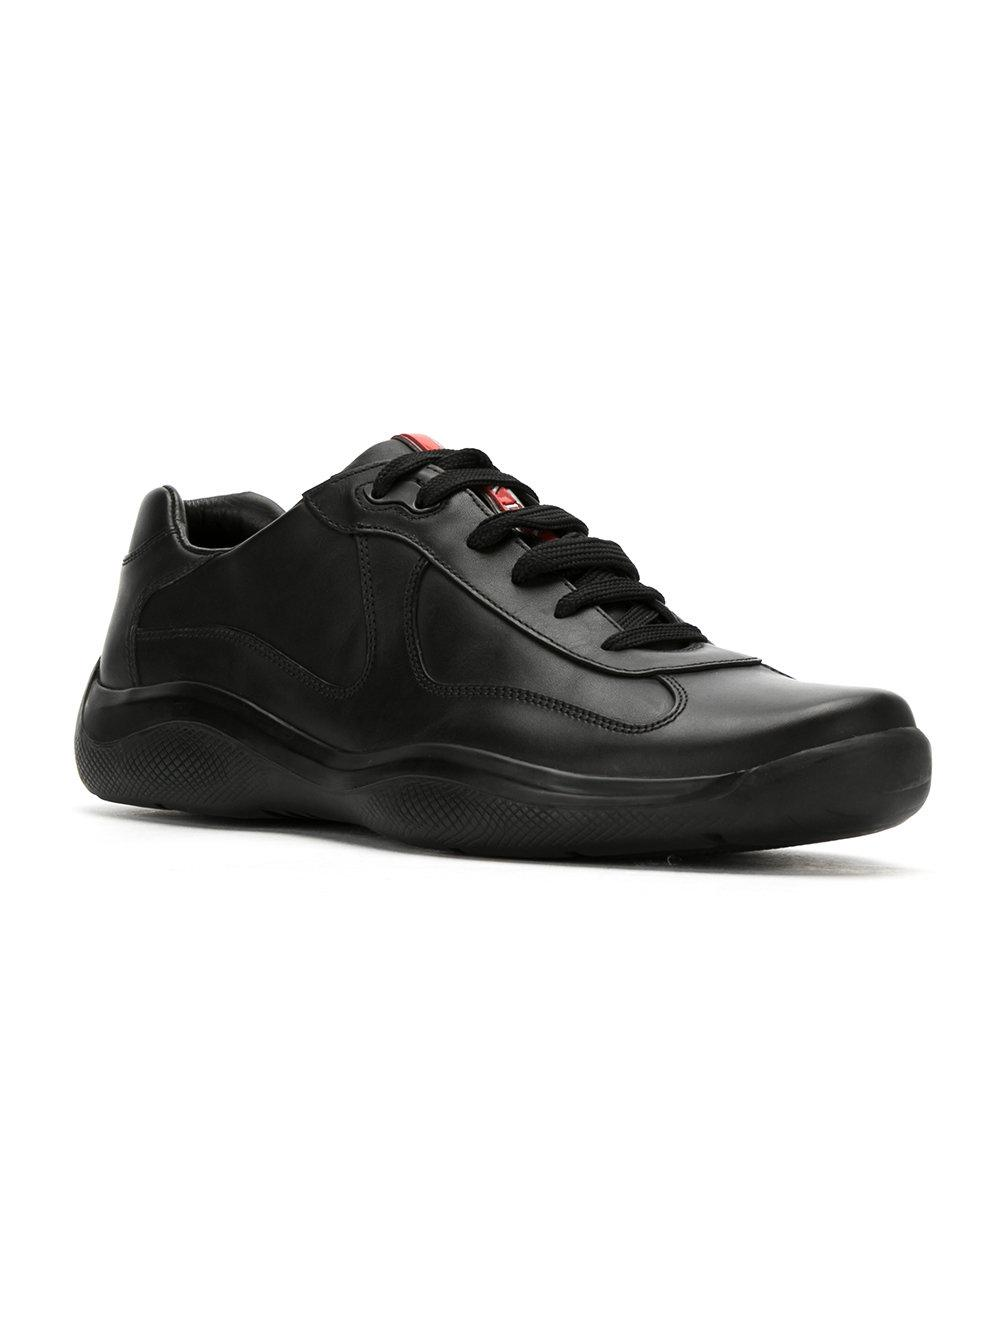 Prada Leather America ́s Cup in Black for Men